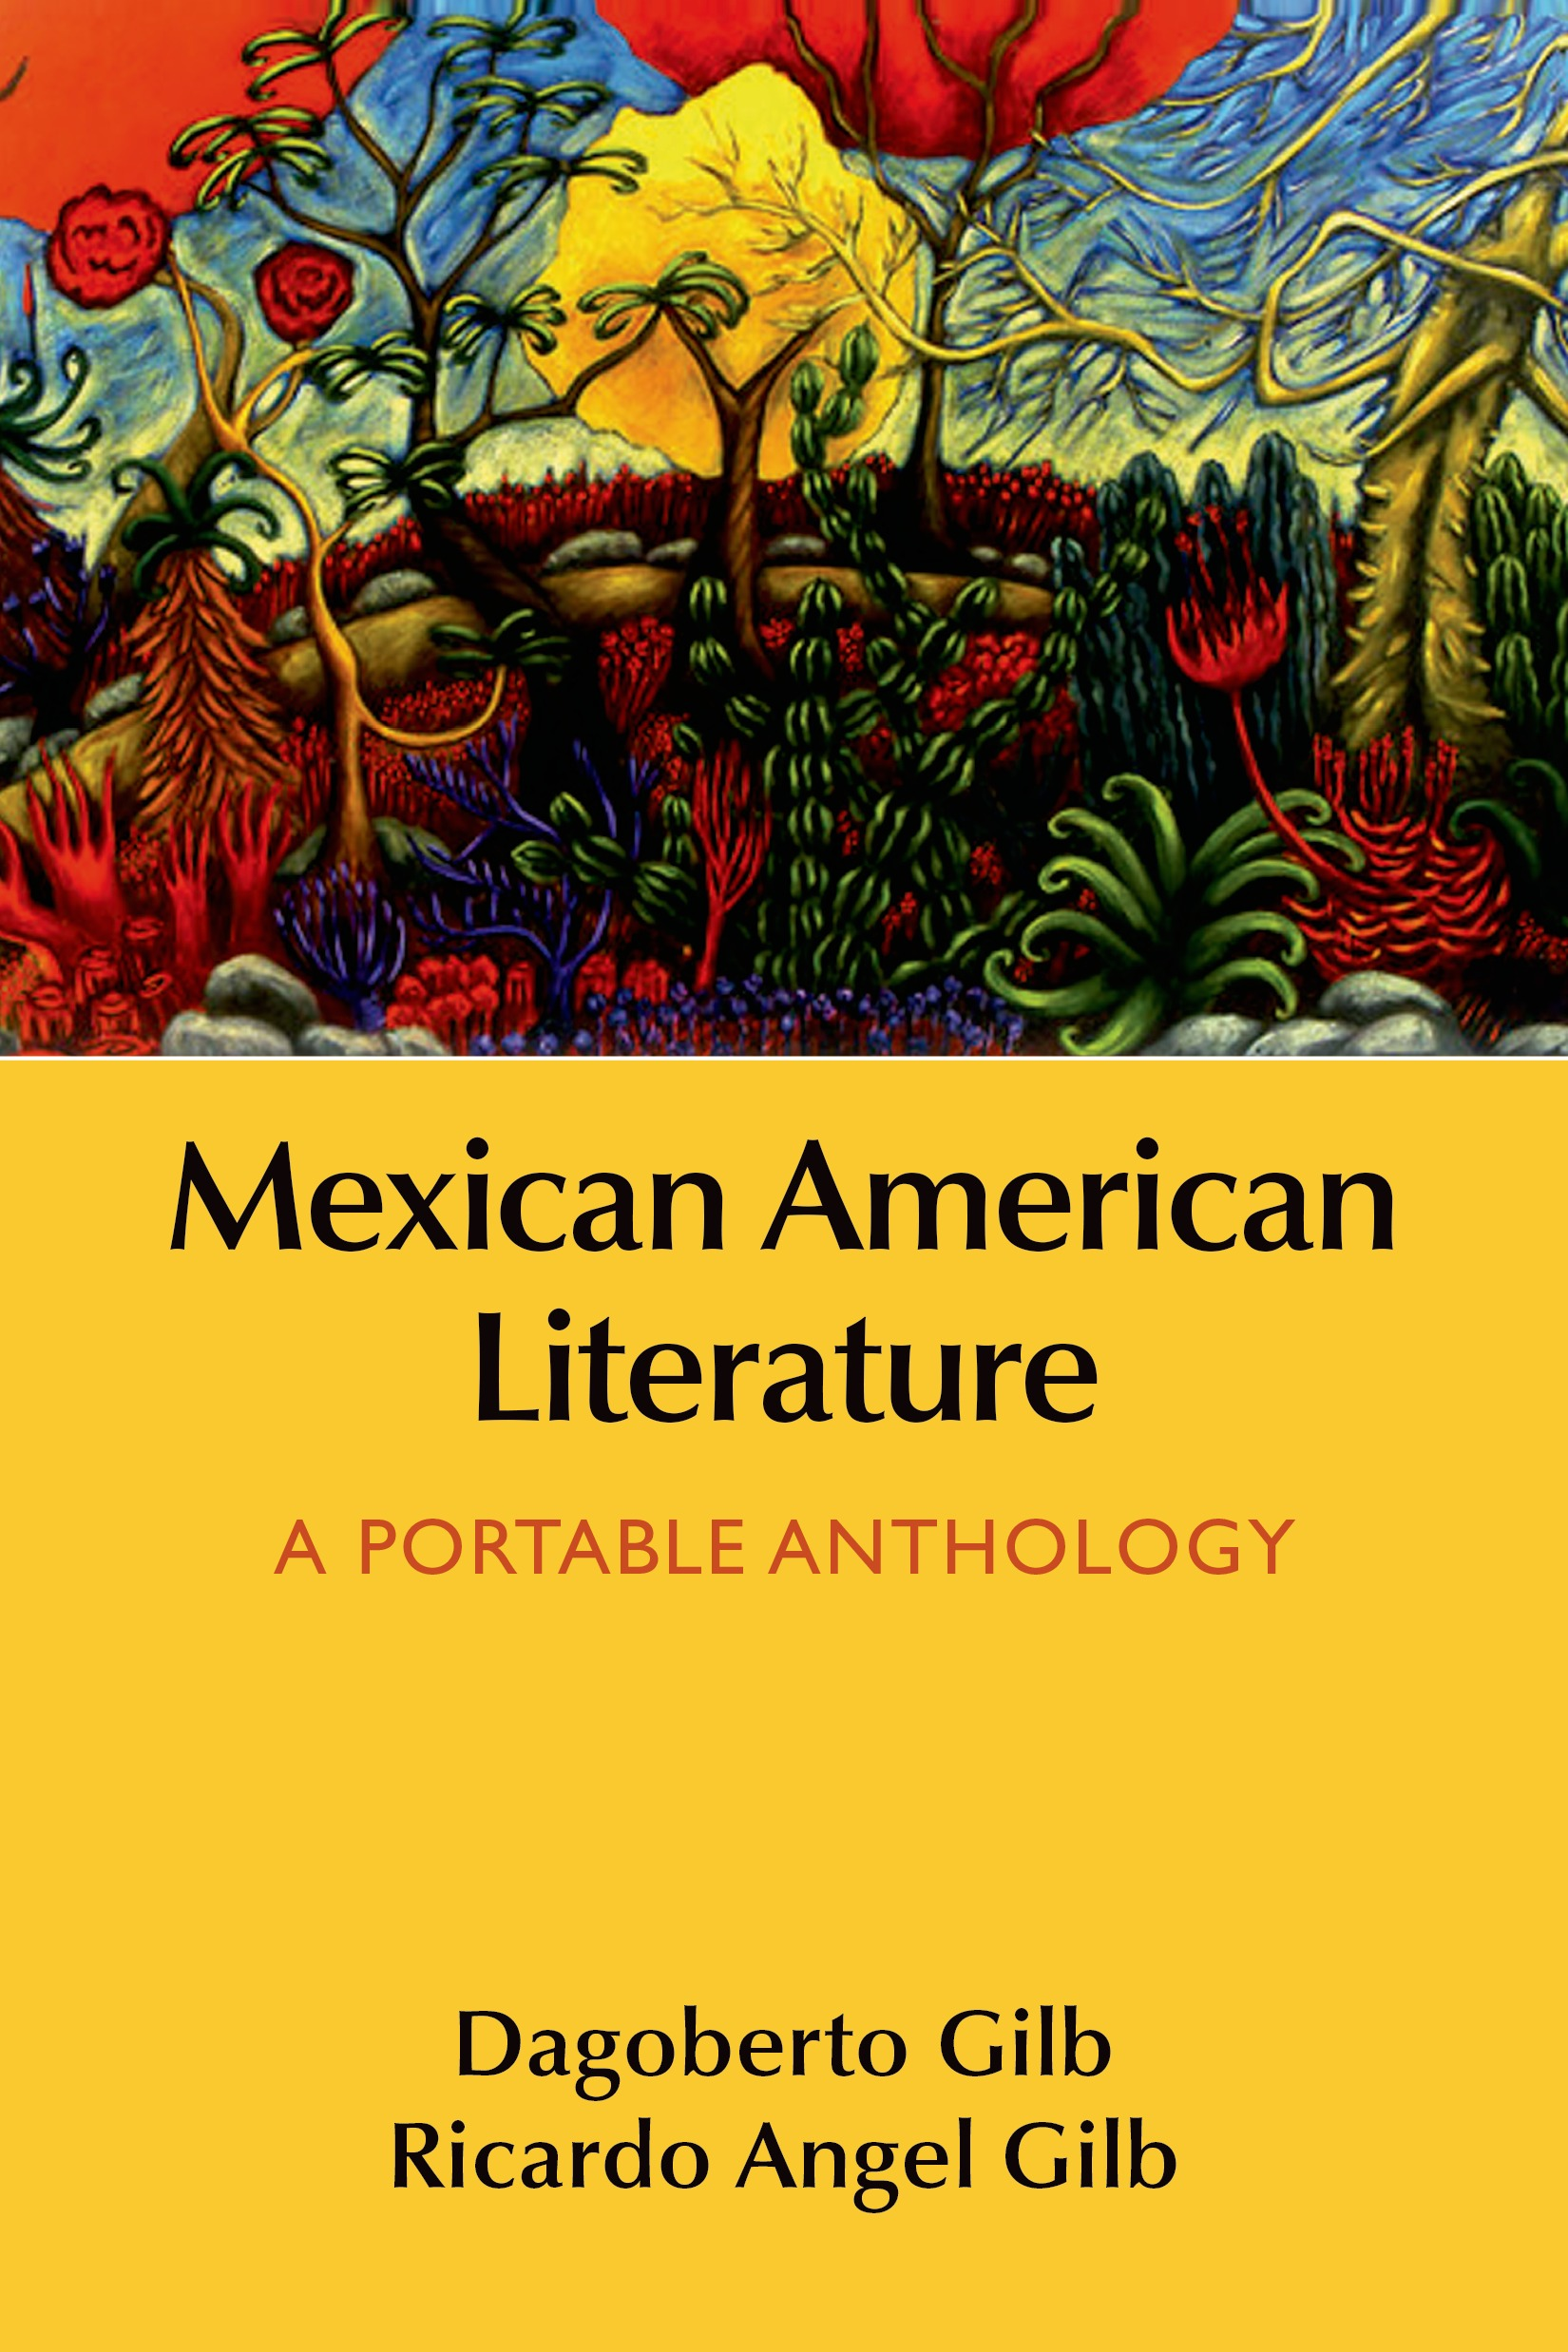 mexican american literature macmillan learning  image mexican american literature